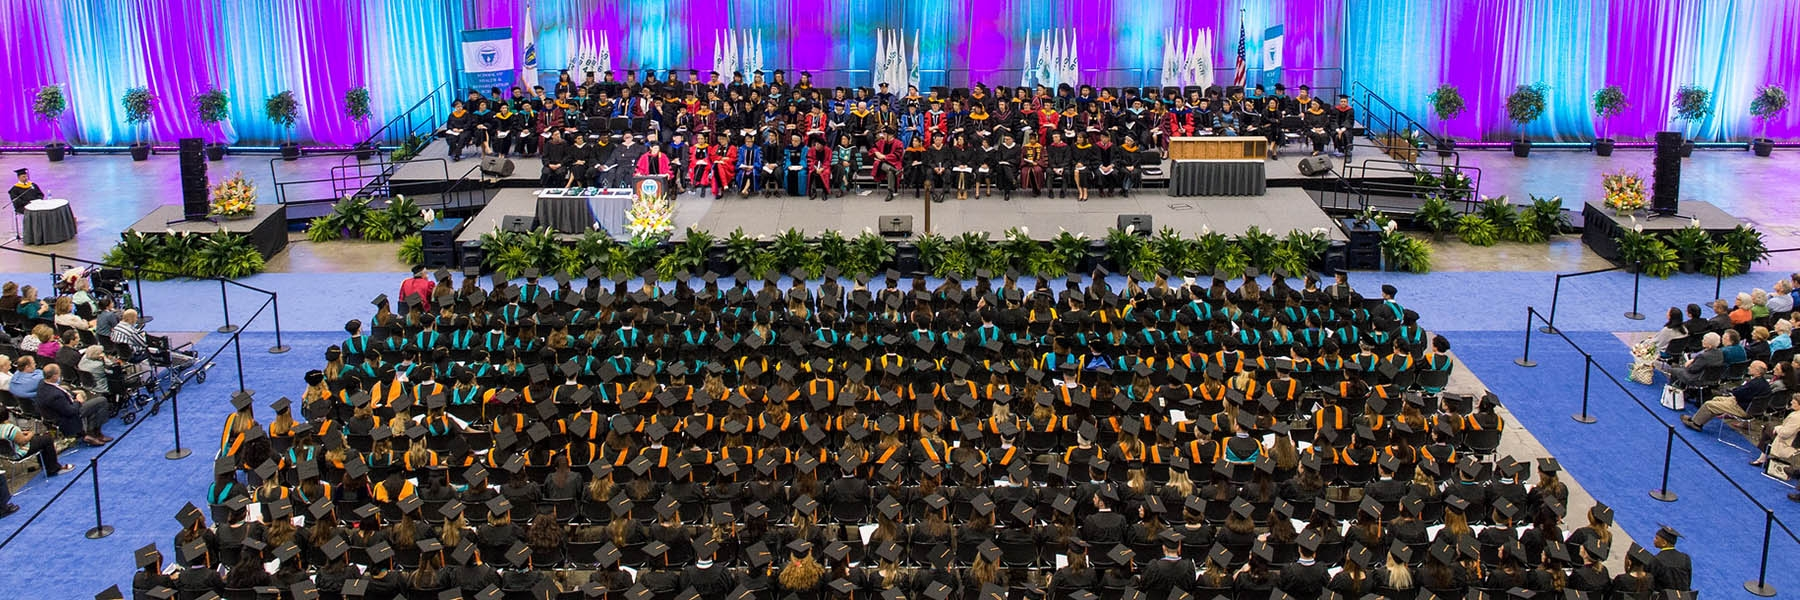 photo of large graduating class from above